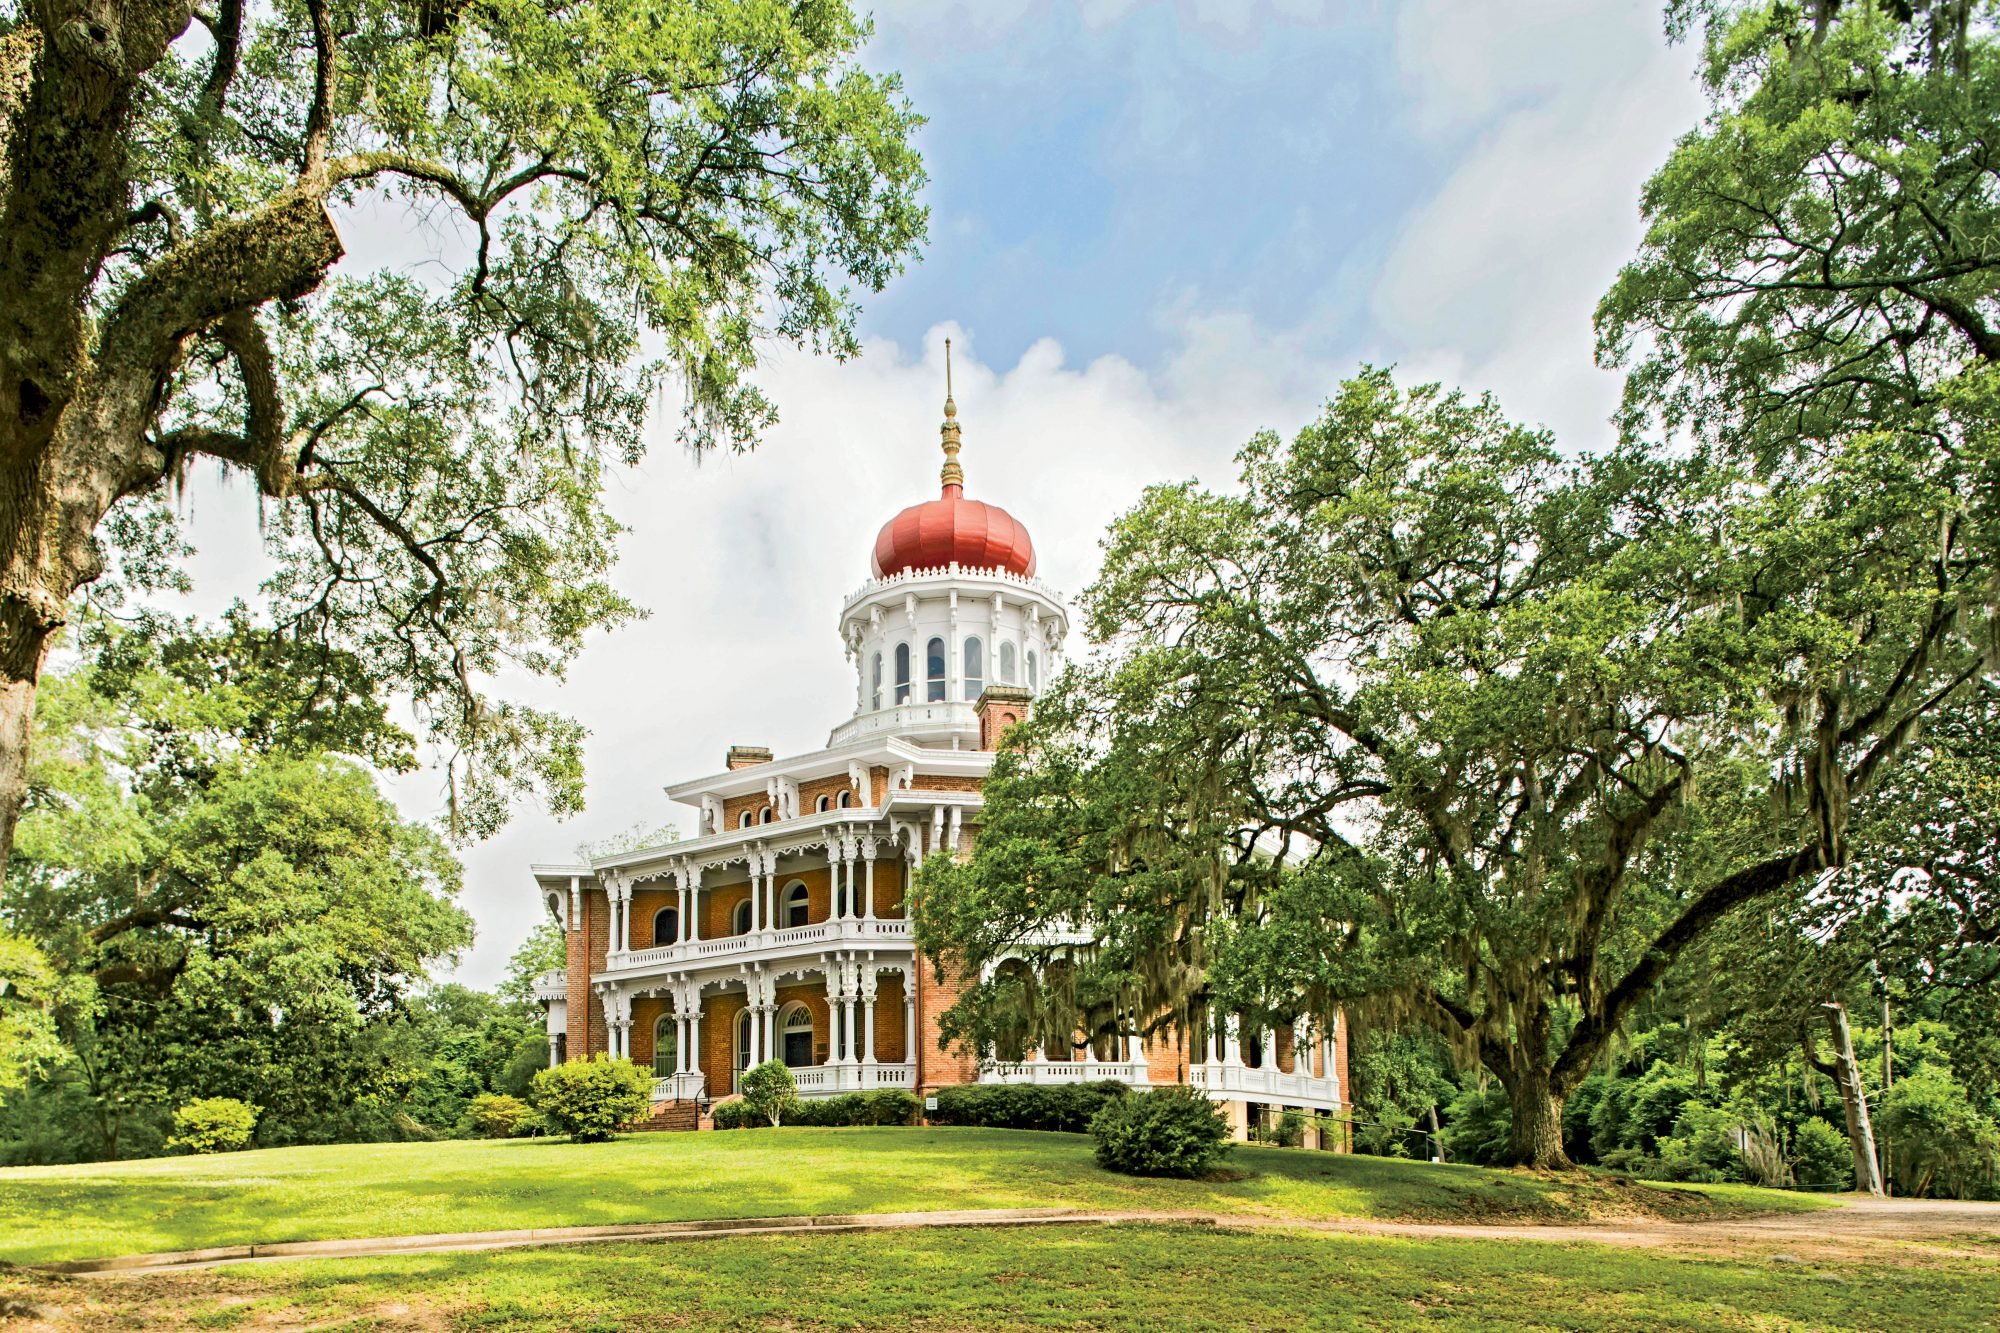 Longwood Mansion in Natchez, Mississippi